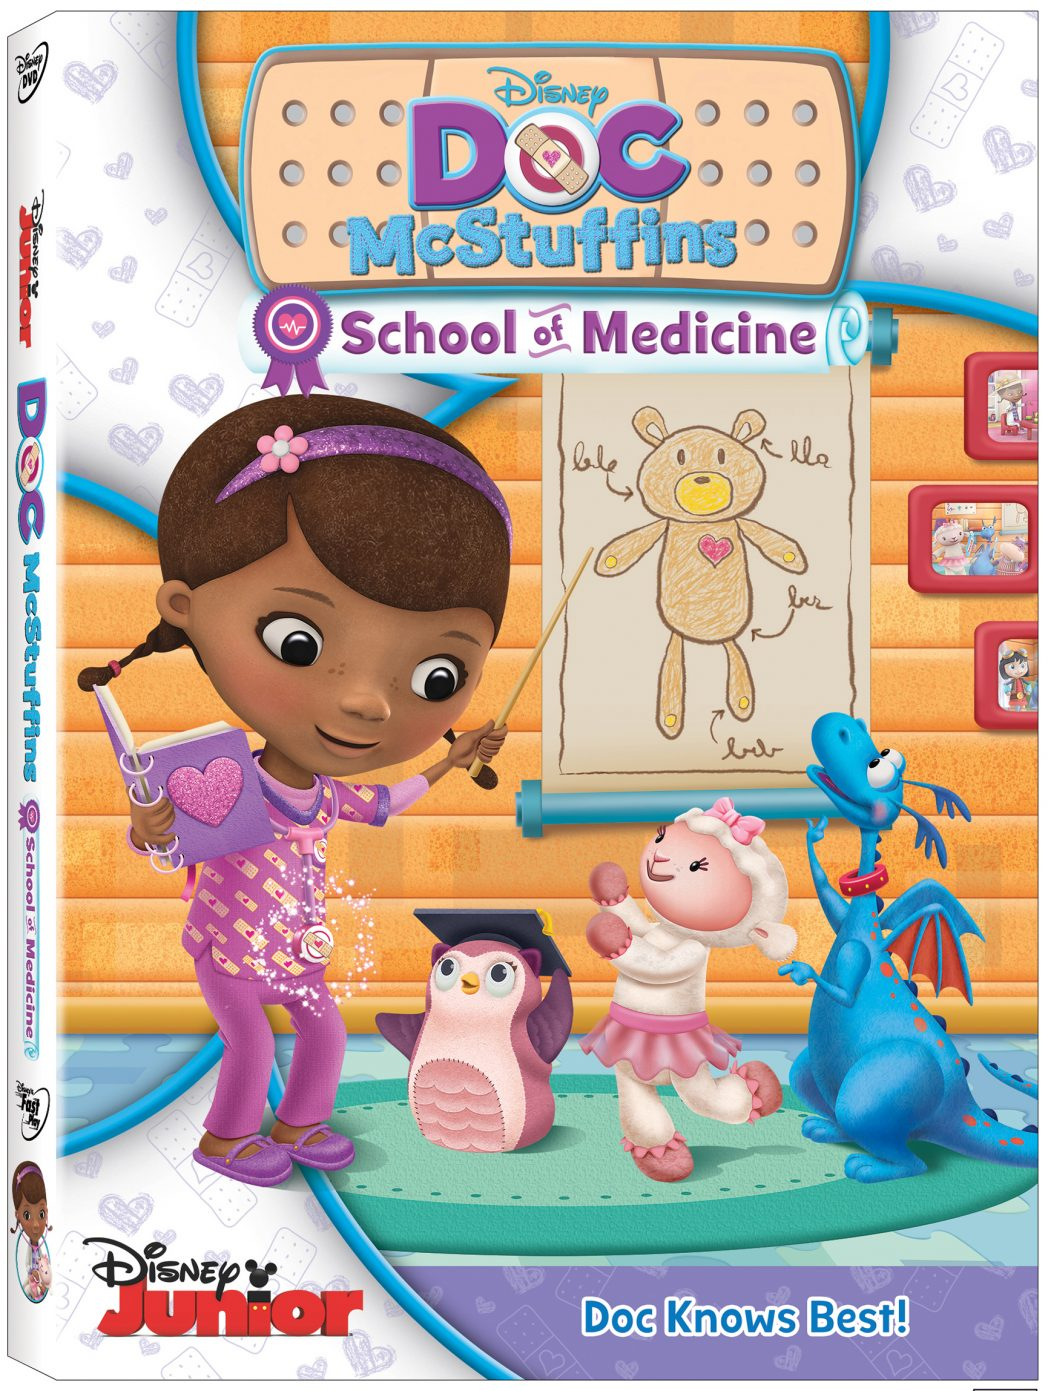 Doc McStuffins: School of Medicine now available on DVD!